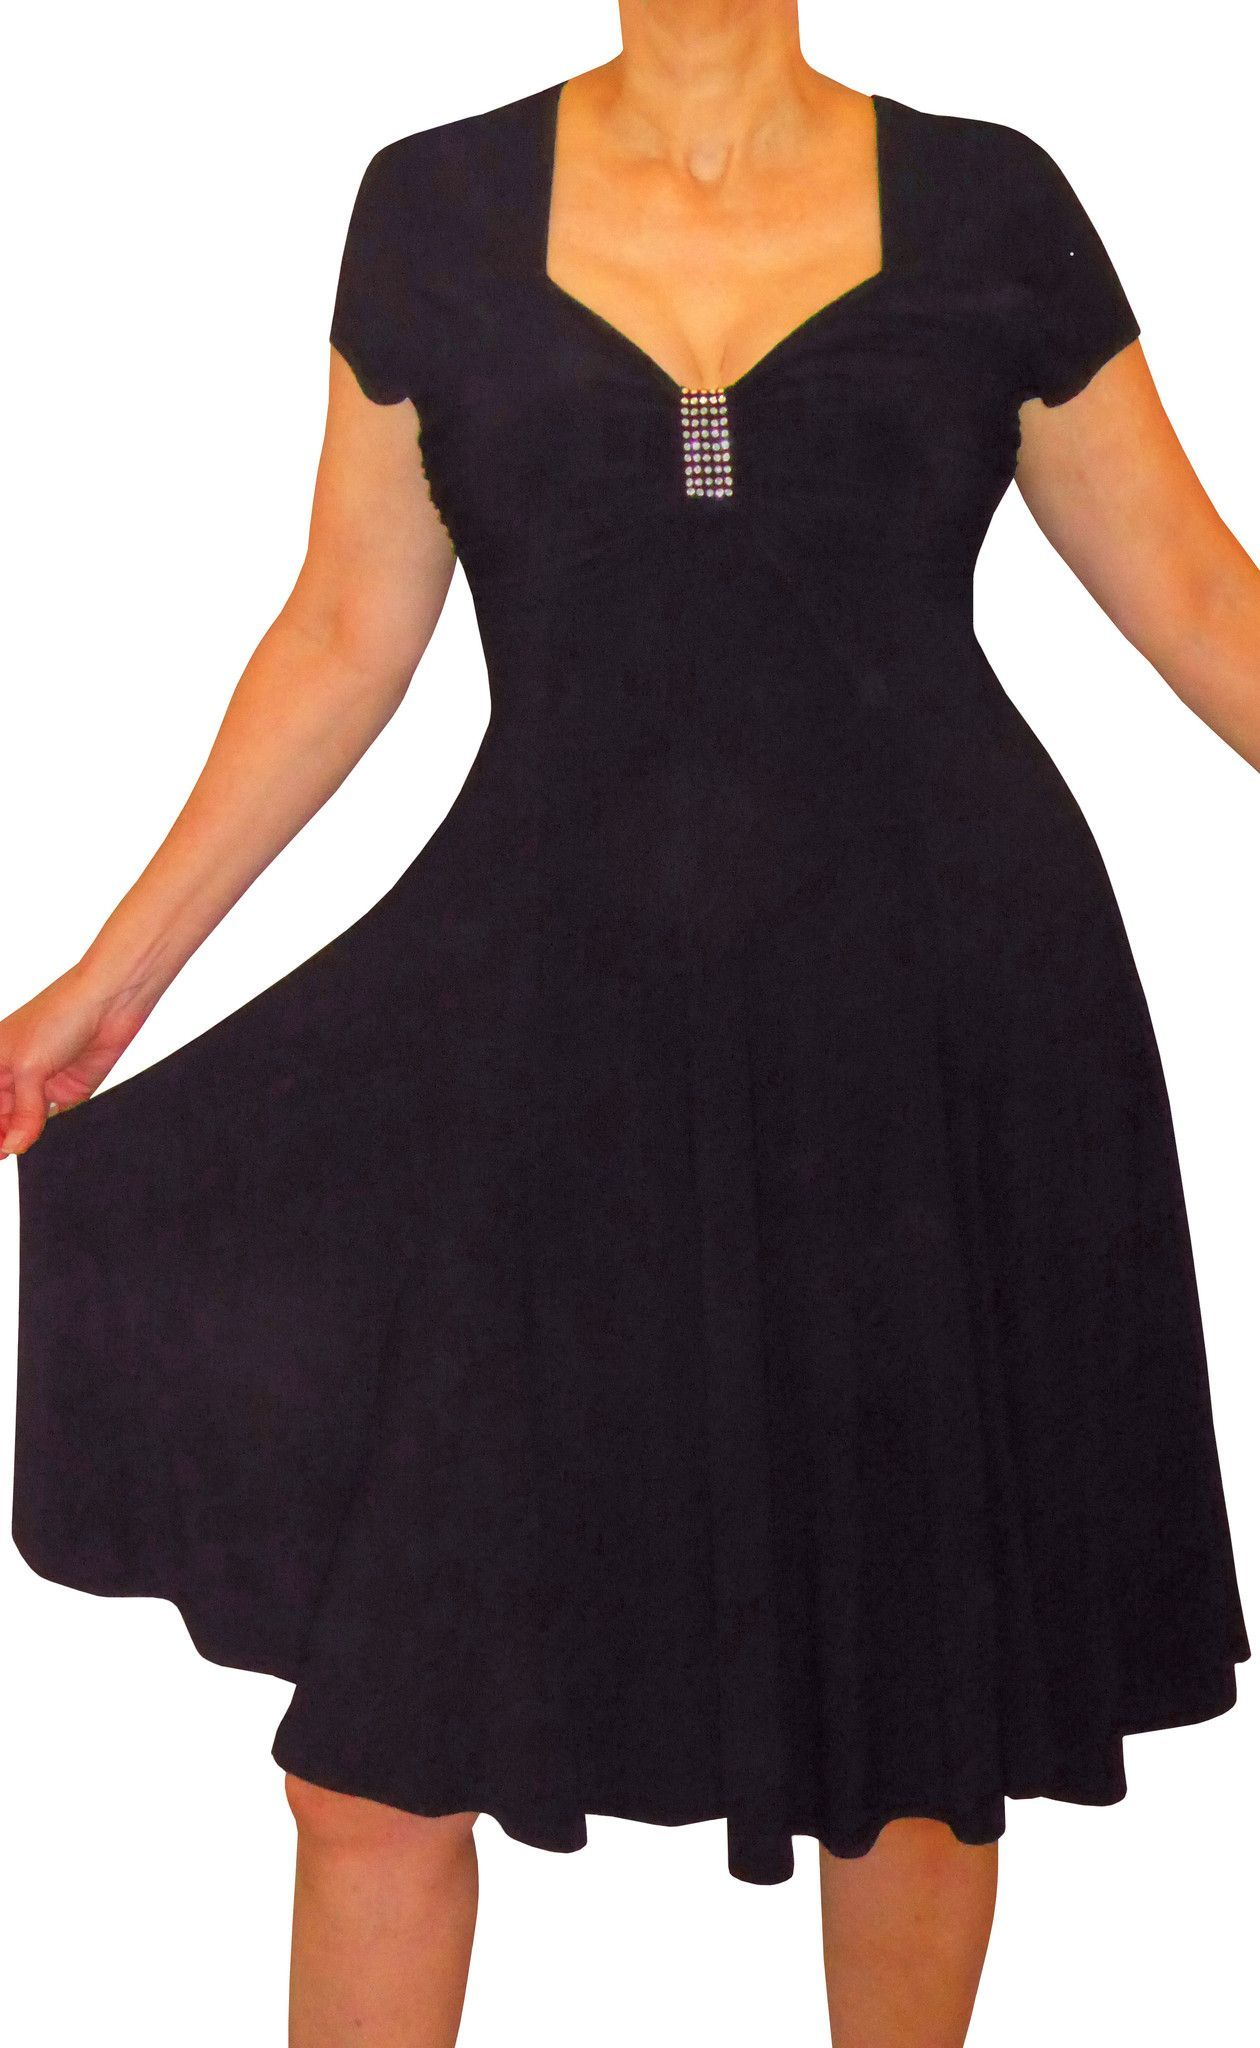 Plus Size Clothing for Women Slimming Empire Waist Black Cocktail ...